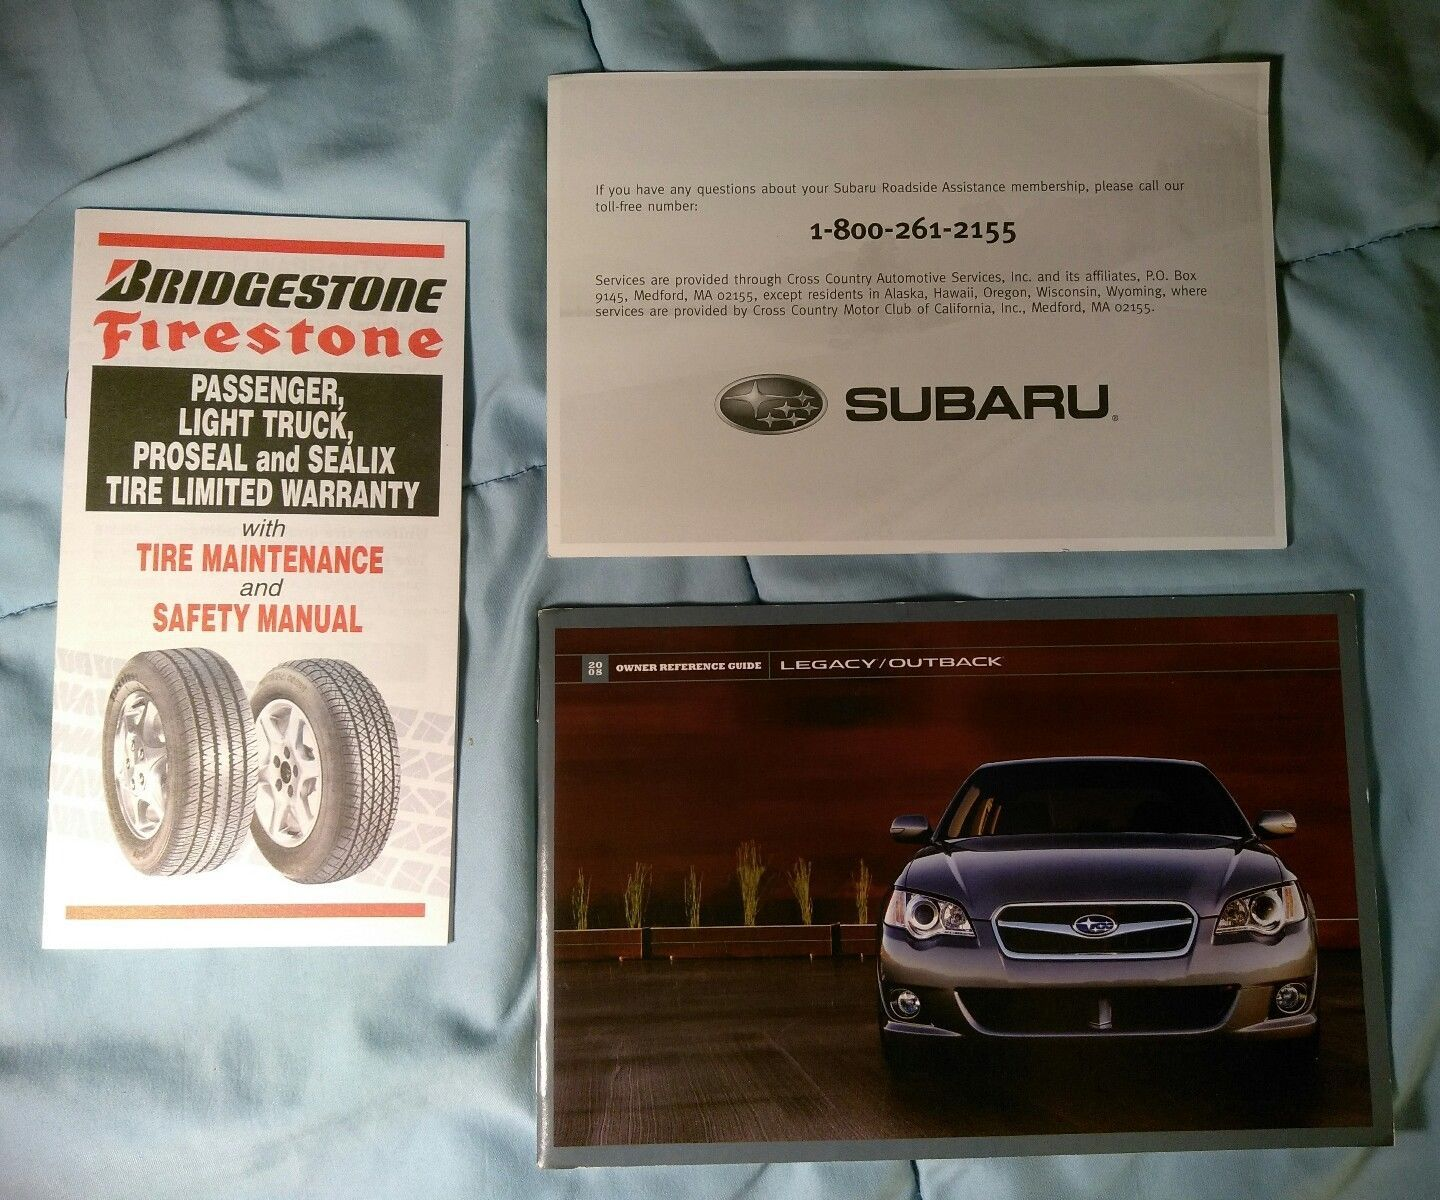 2008 Subaru Legacy Outback Owner's Owners Manual Guide Books Case (9 pcs)